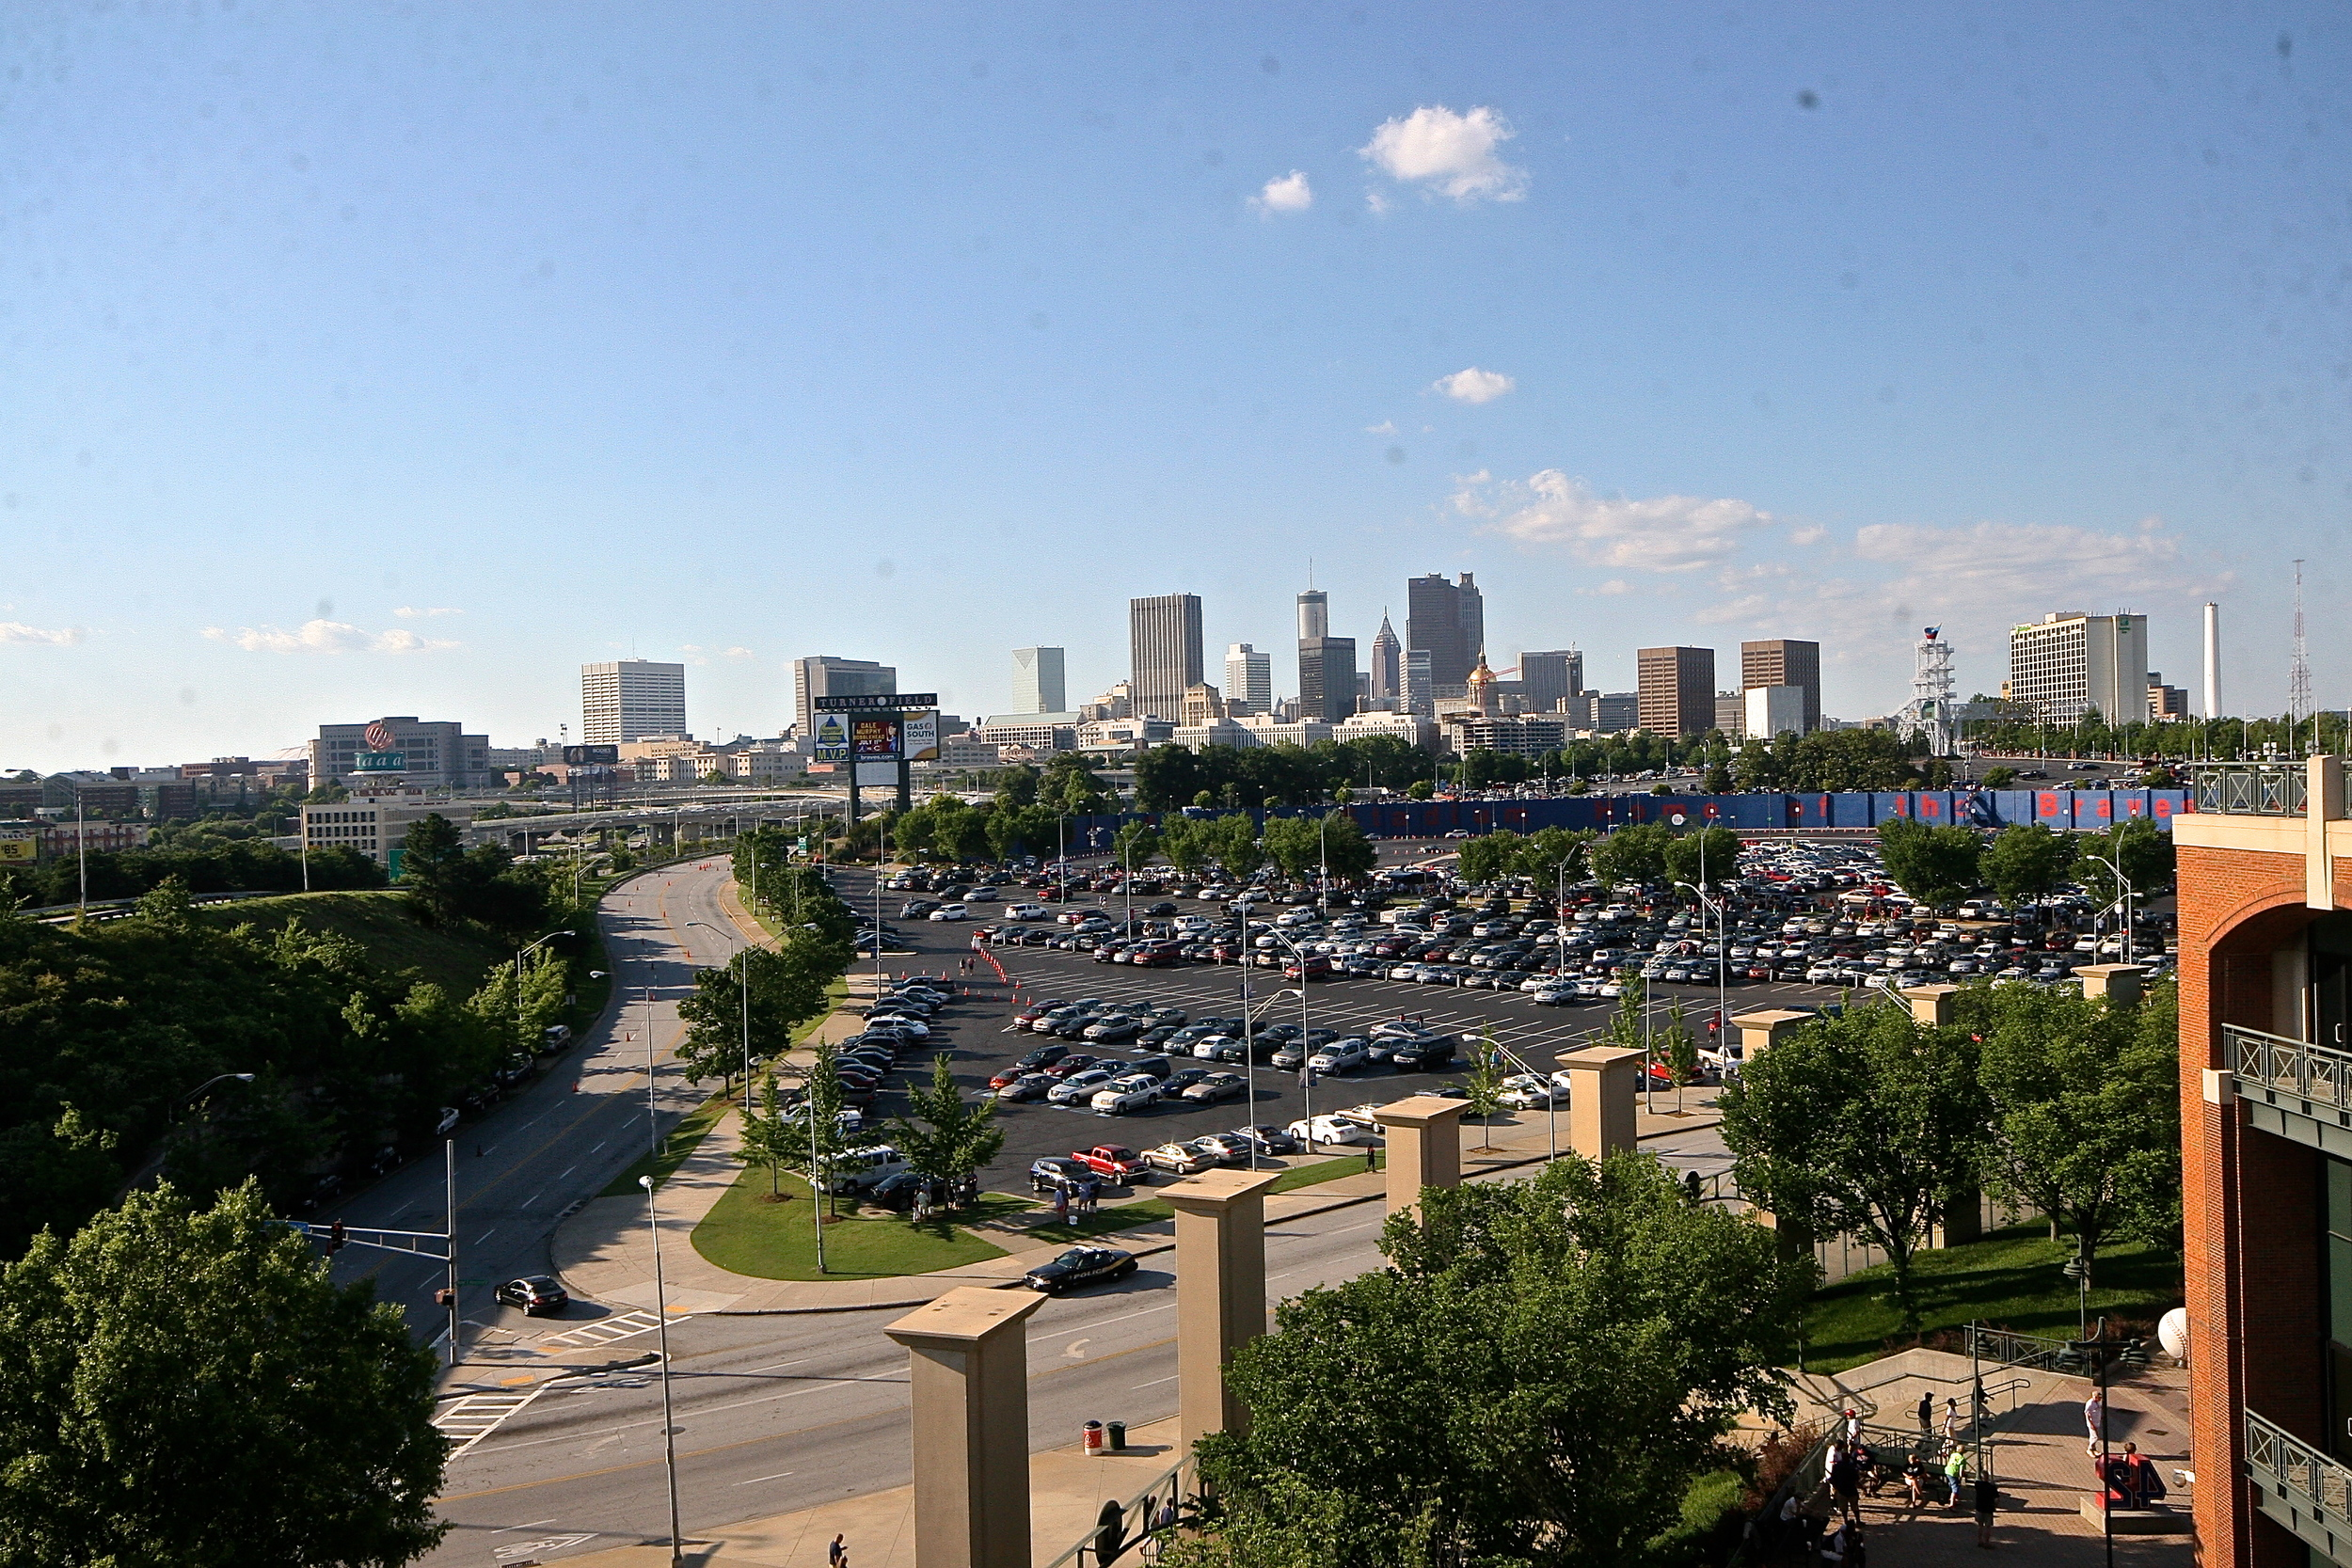 View of downtown Atlanta from the ballpark